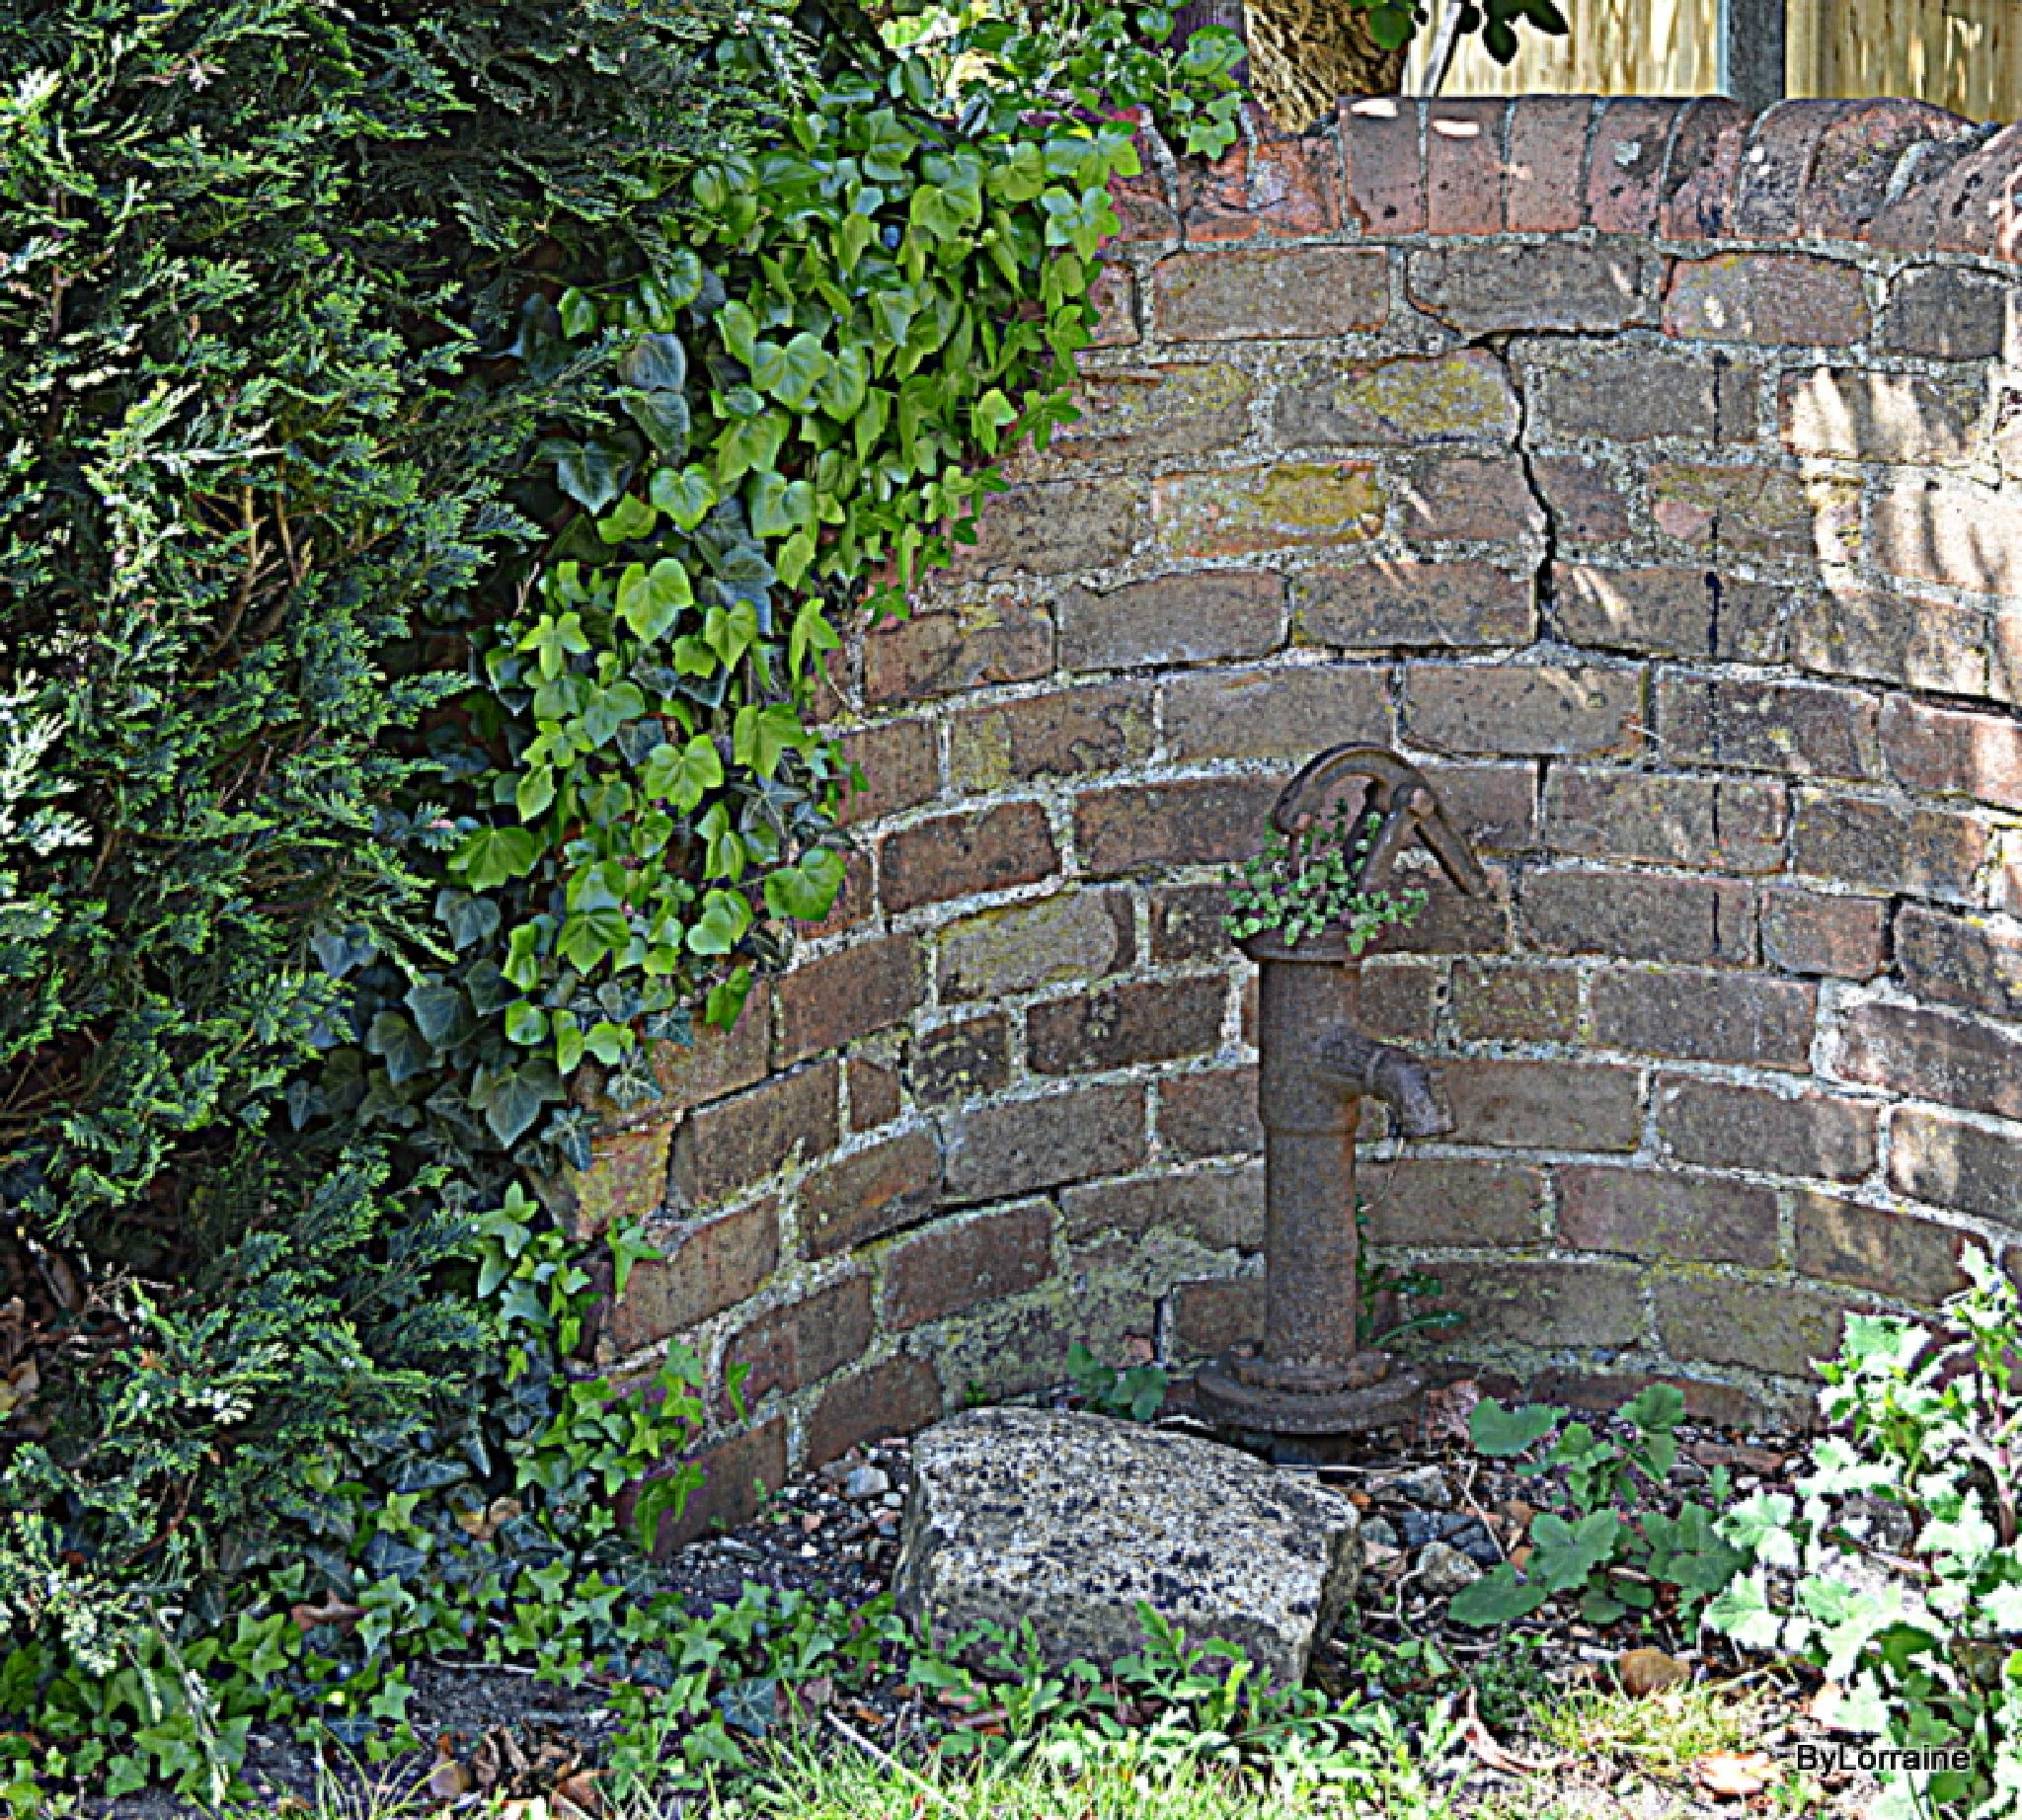 Old Water pump by Lorraine. Sgt